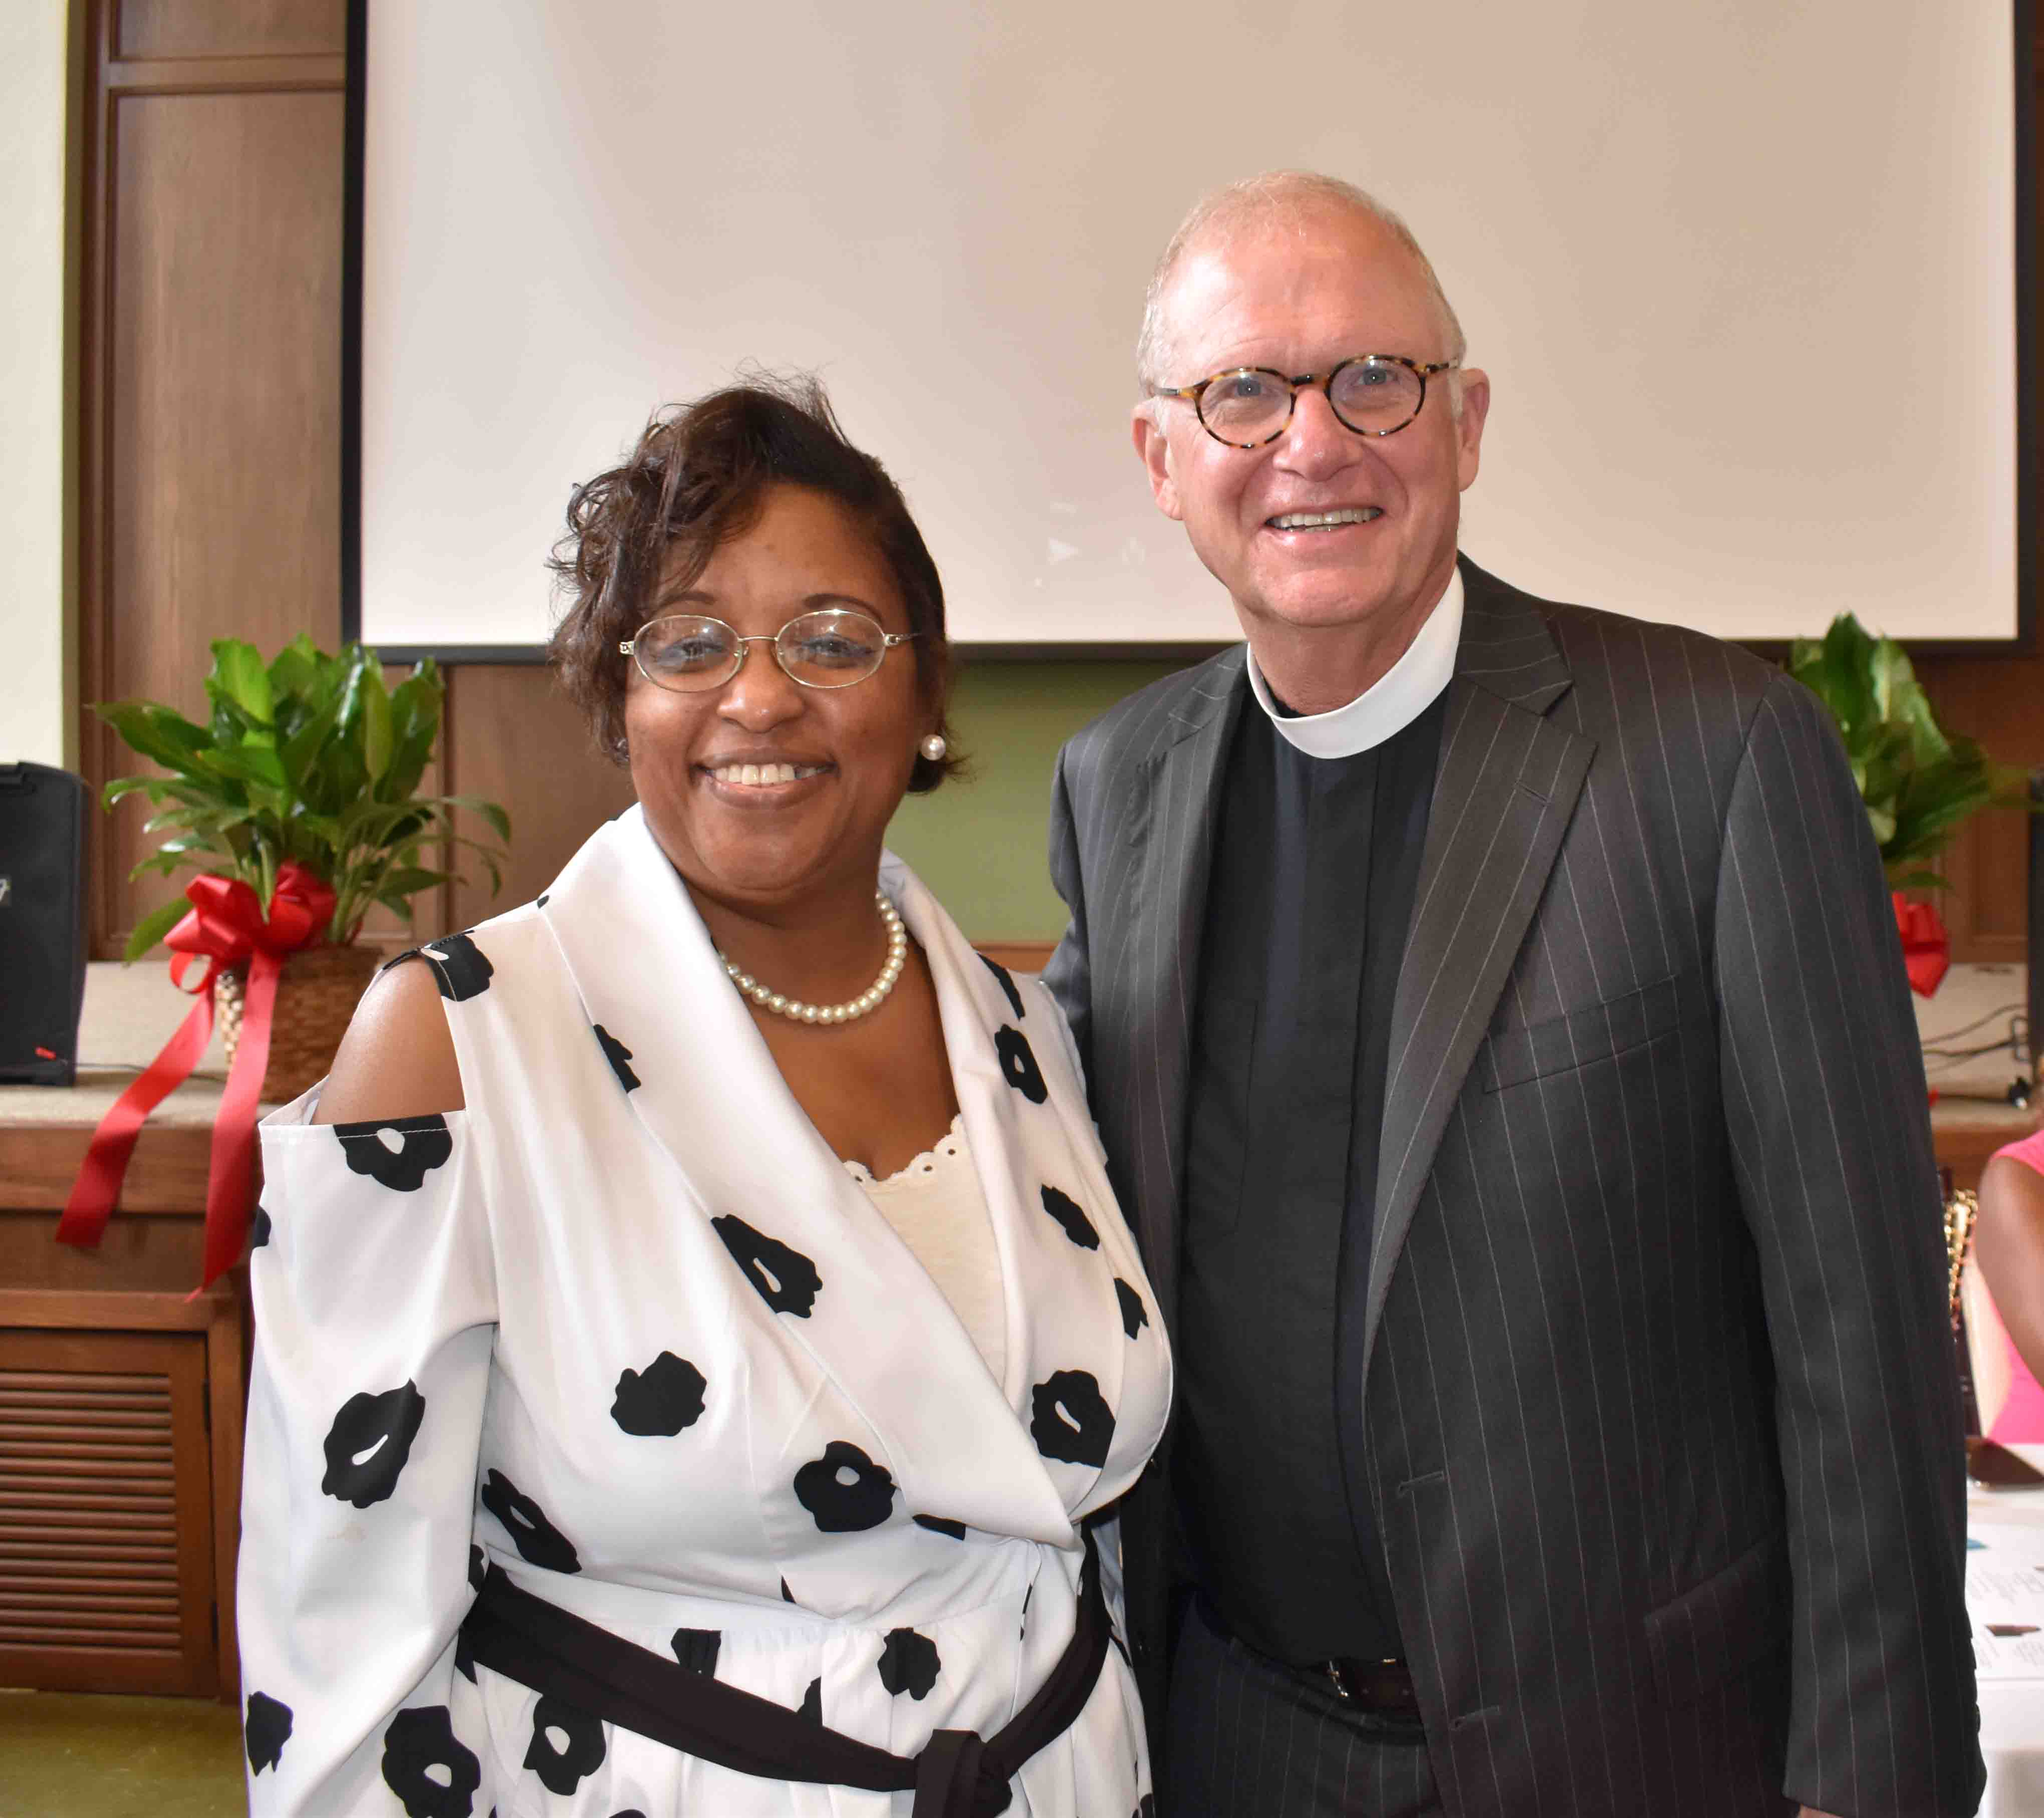 Tina Wright, The Very Rev. Dr. Christoph Heller, III